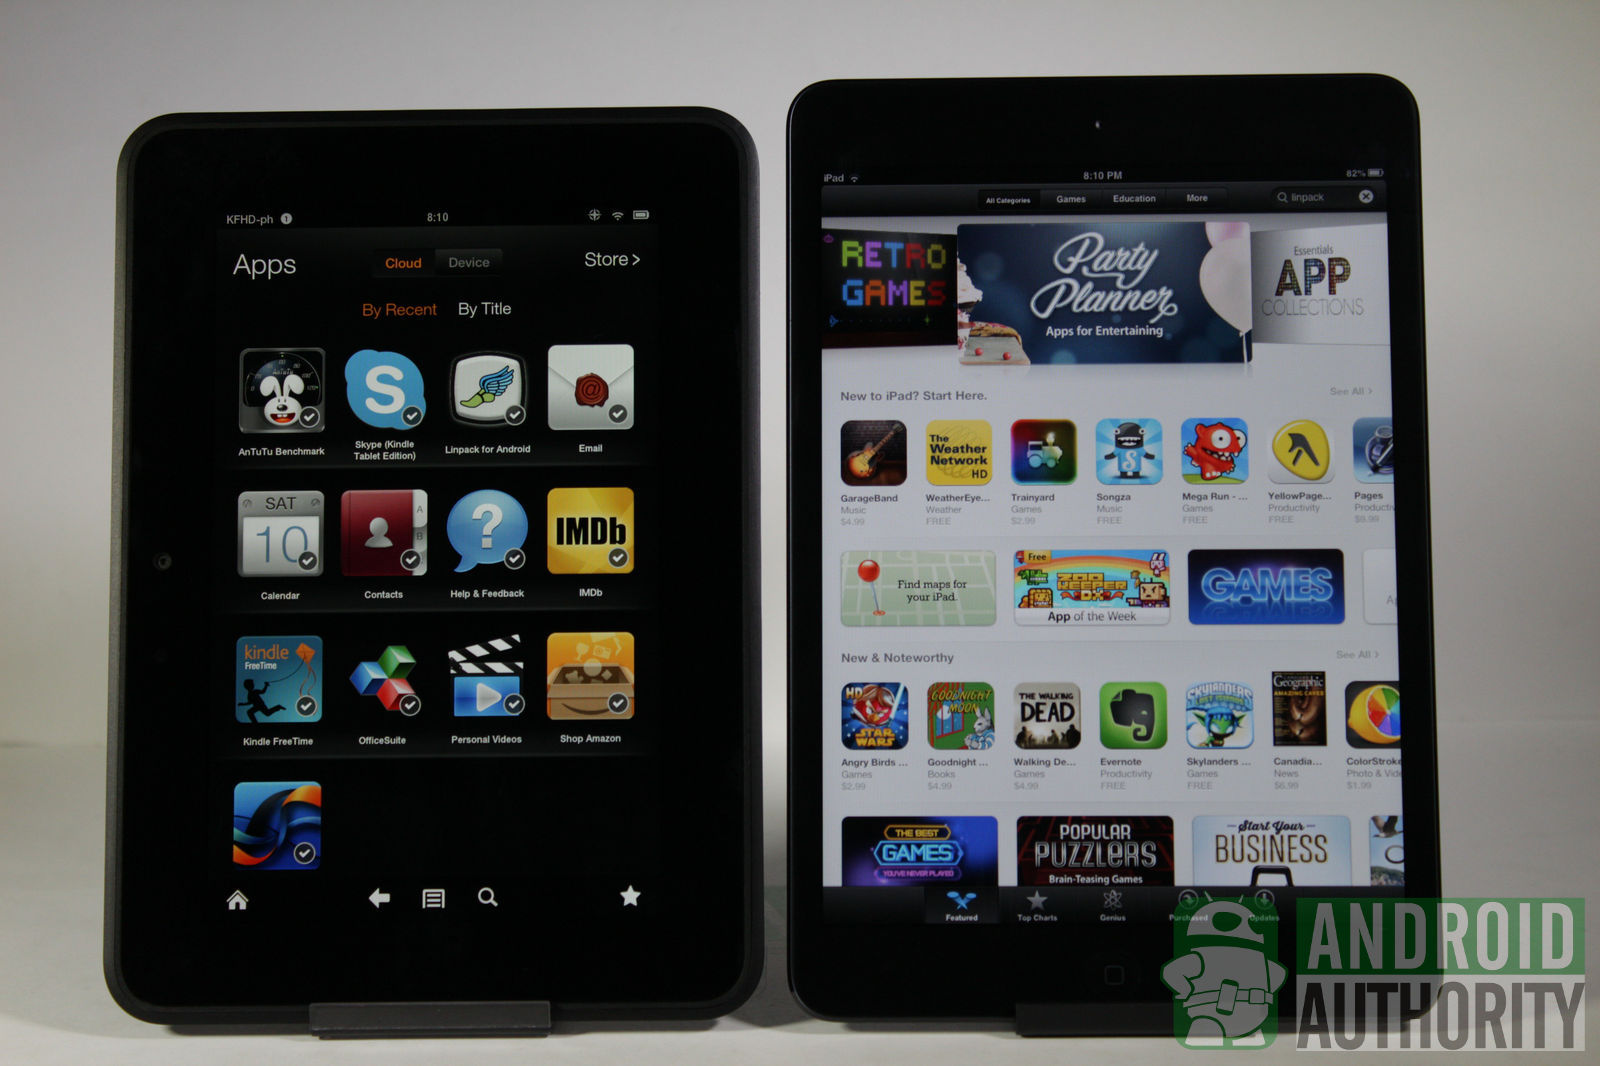 New Ipad Mini 1024 1024 Hd Wallpapers 100 Images Updated: Live Wallpaper For IPad Mini